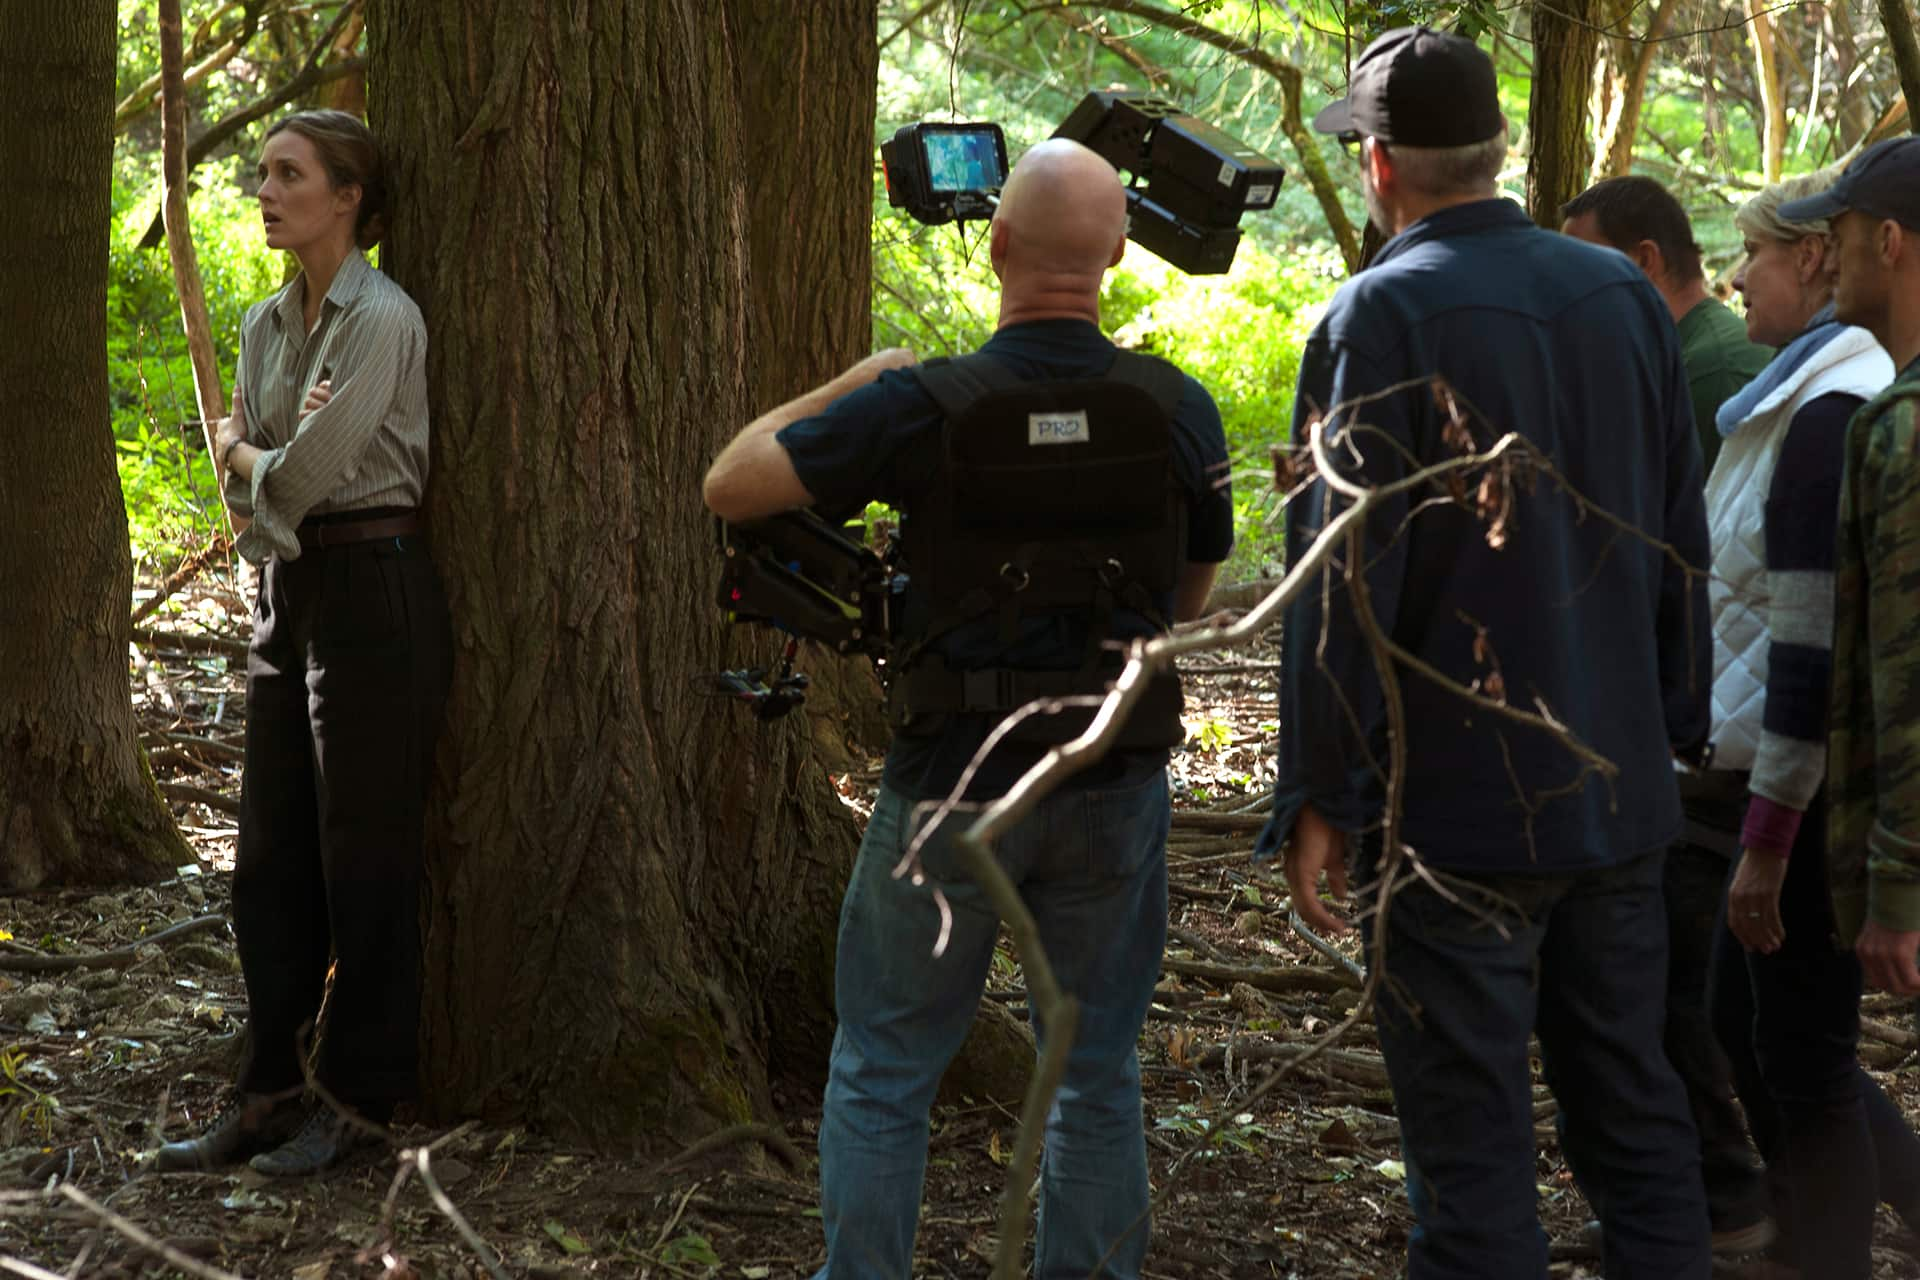 Evelyne Brochu and crew working on a particularly tough emotional scene for Aurora.